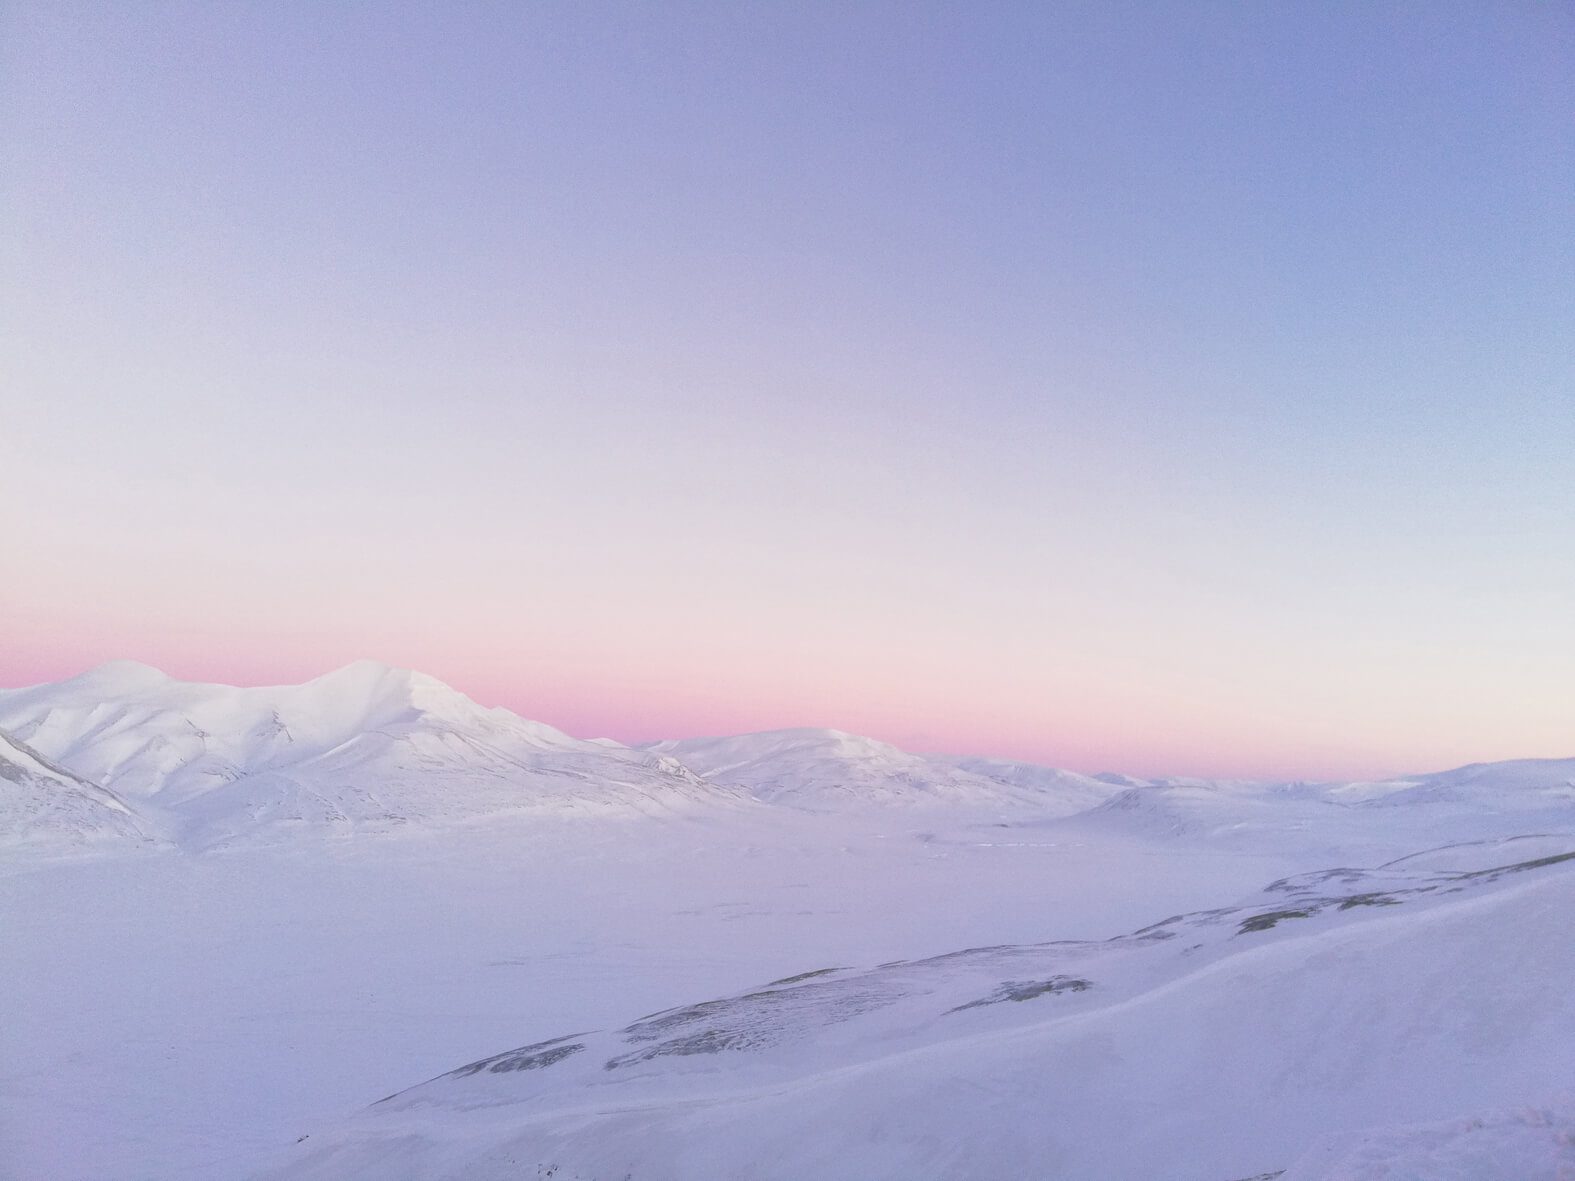 high arctic landscape pink and white sky